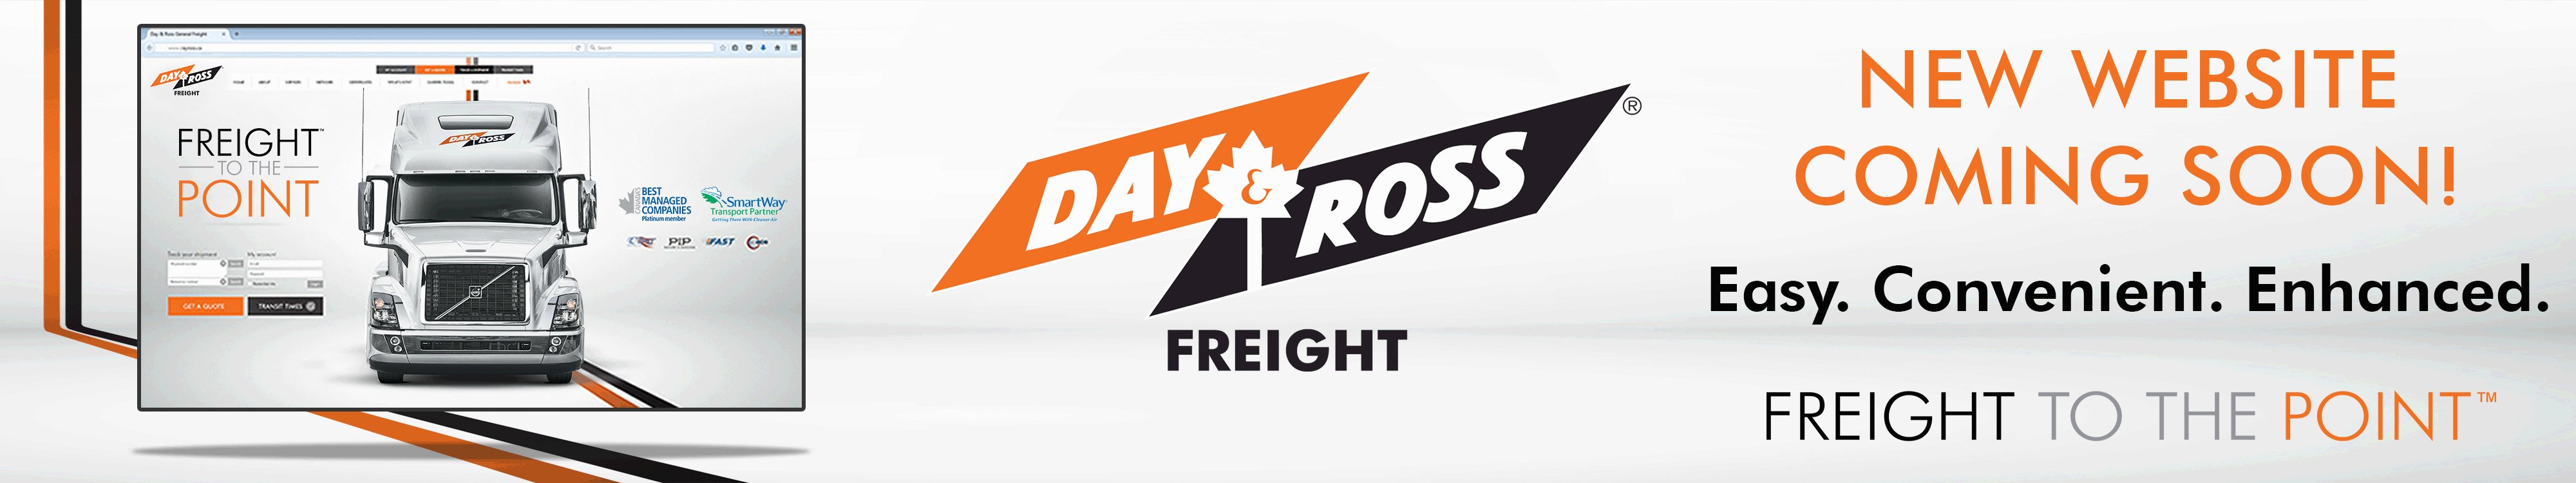 Day & Ross General Freight